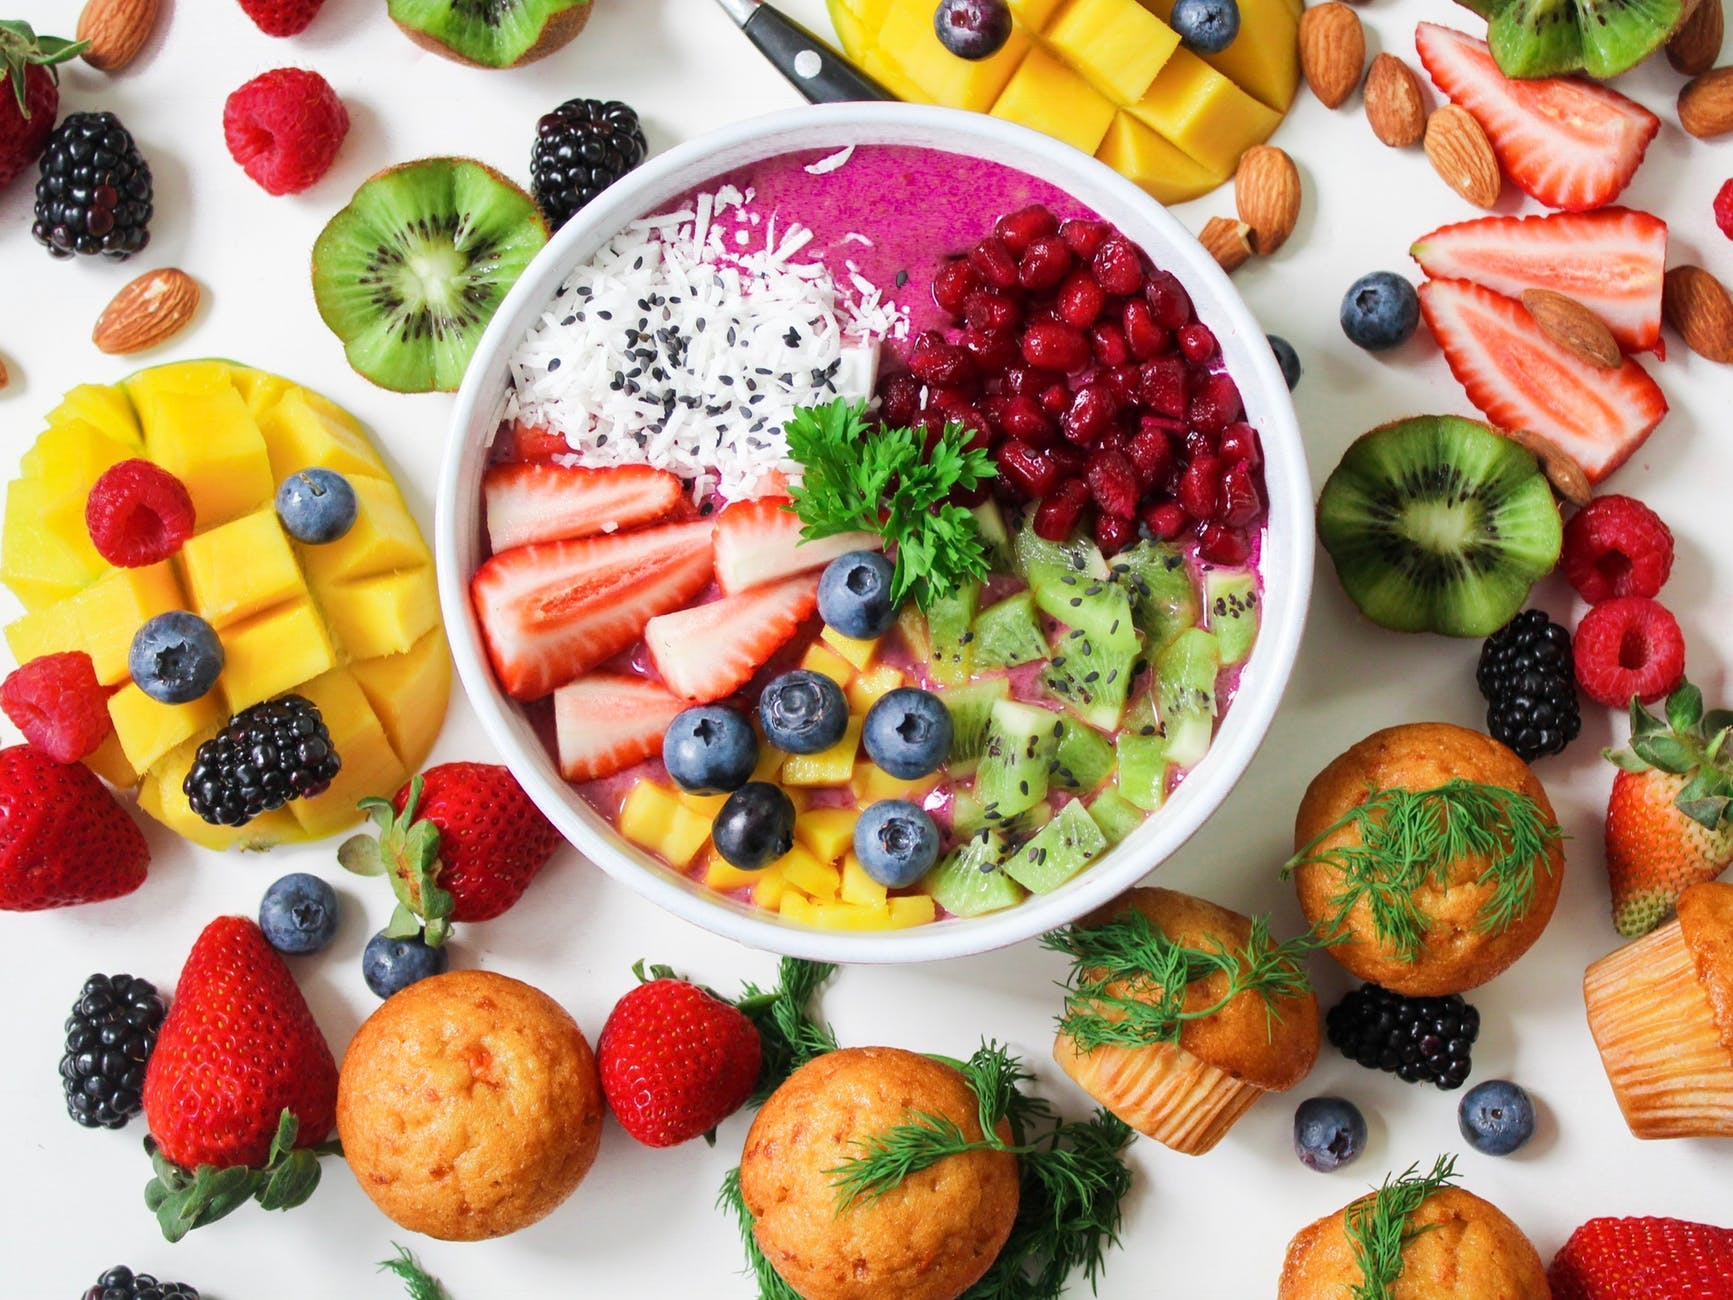 Gradual Lifestyle Changes Can Benefit Your Long-Term Wellbeing